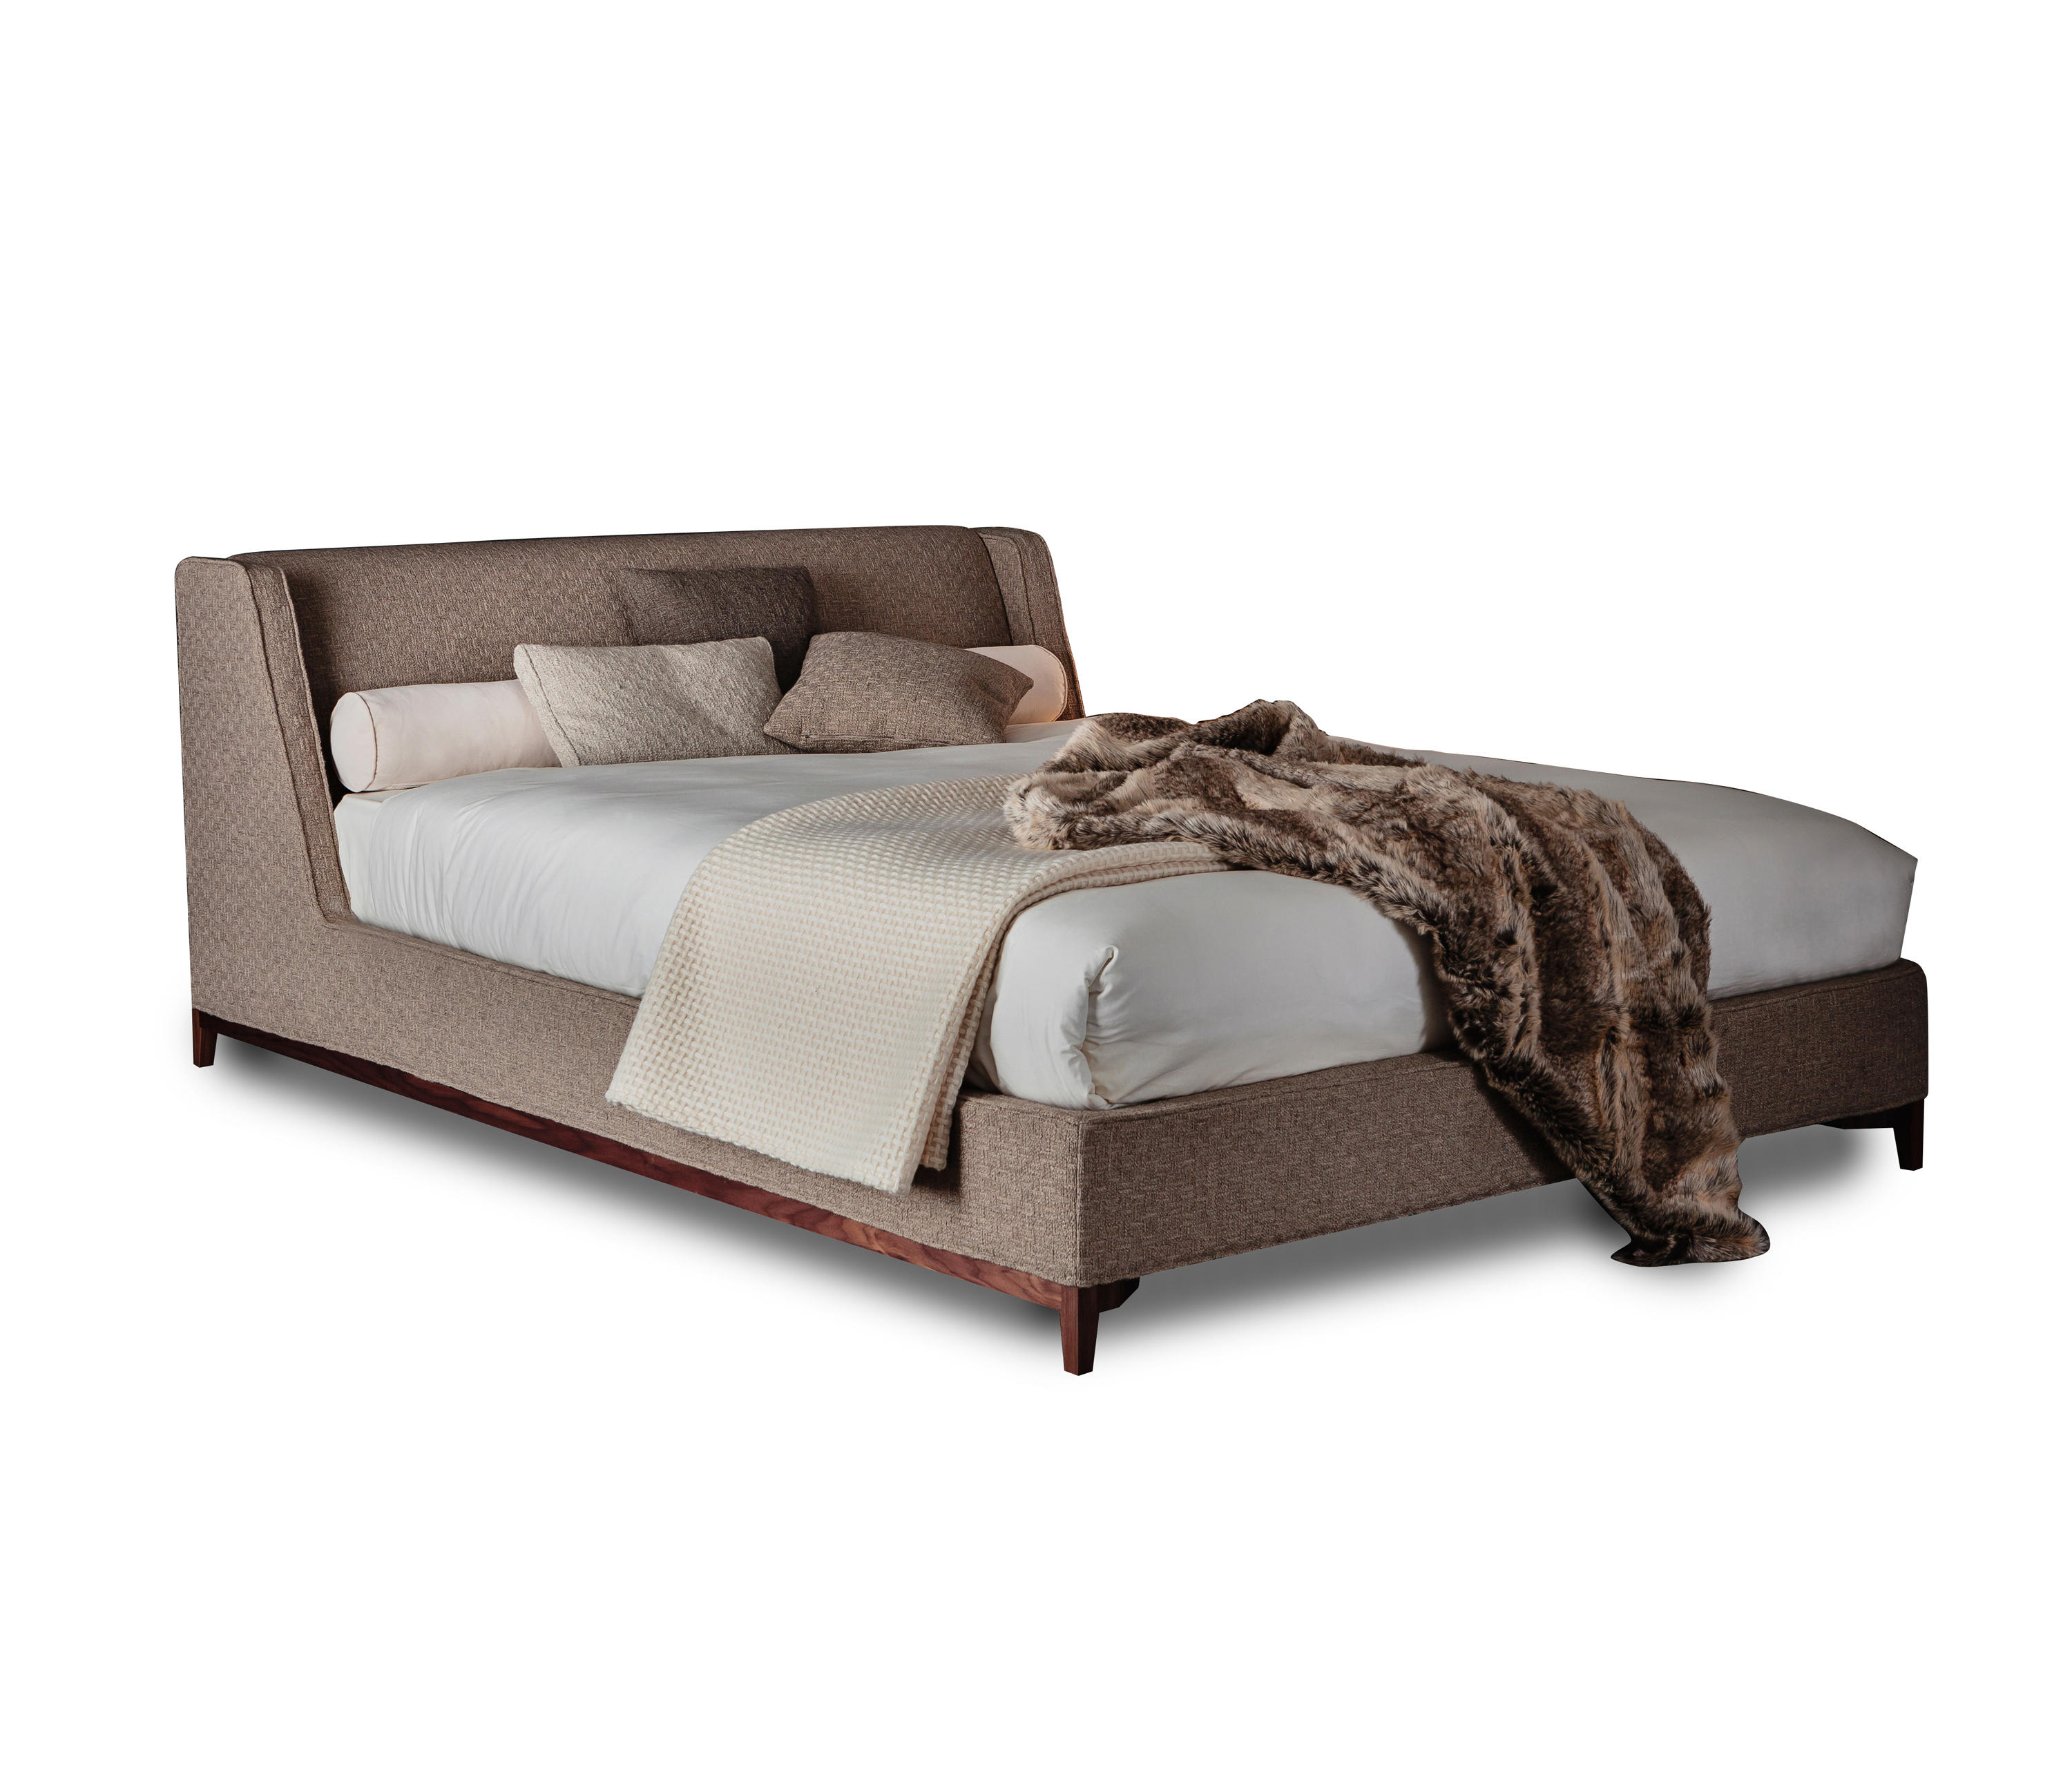 queen 2300 bed double beds from vibieffe architonic. Black Bedroom Furniture Sets. Home Design Ideas